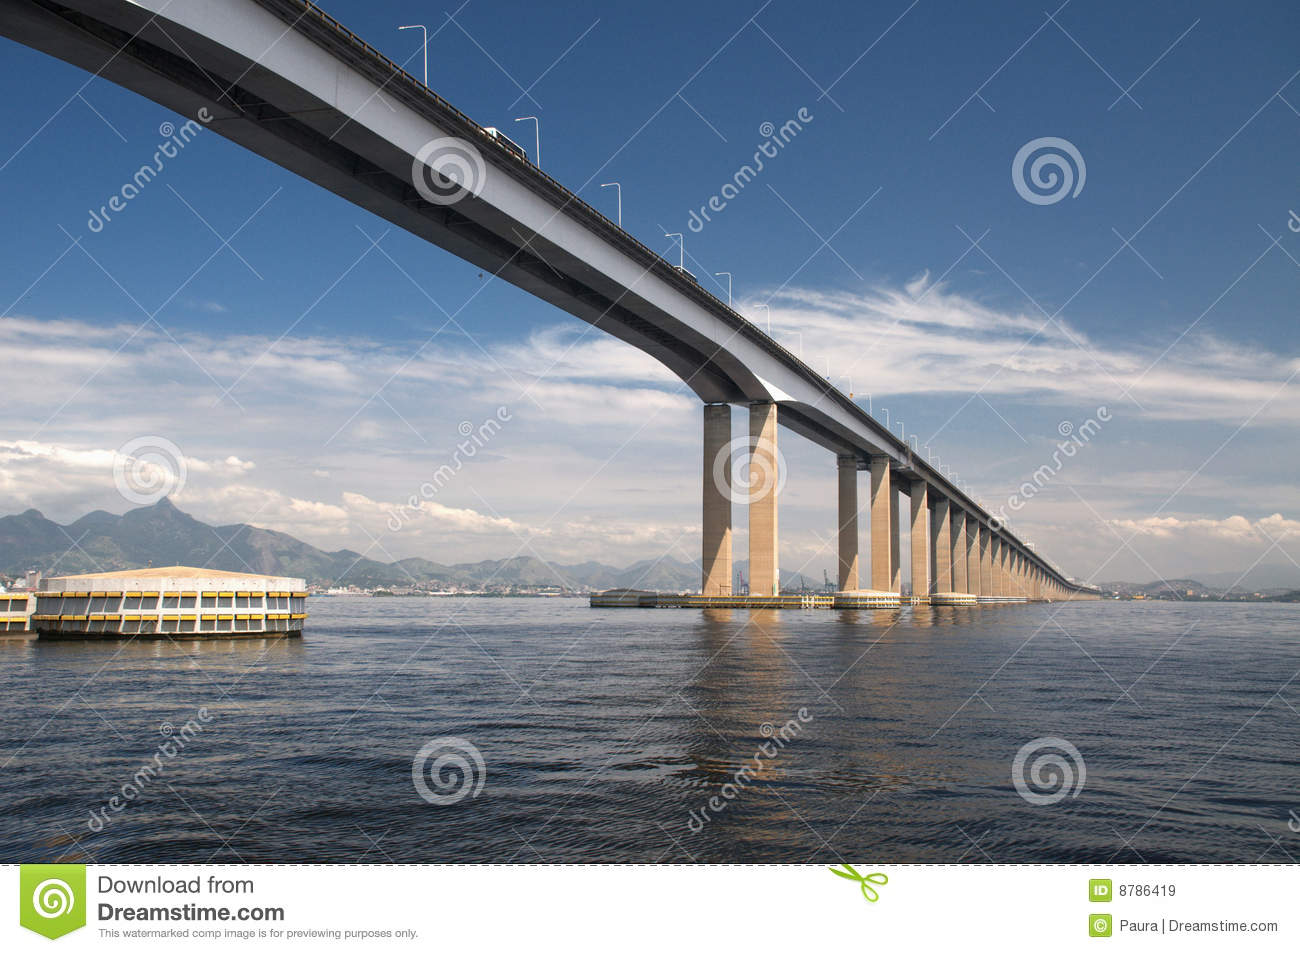 Guanabara Bay Bridge